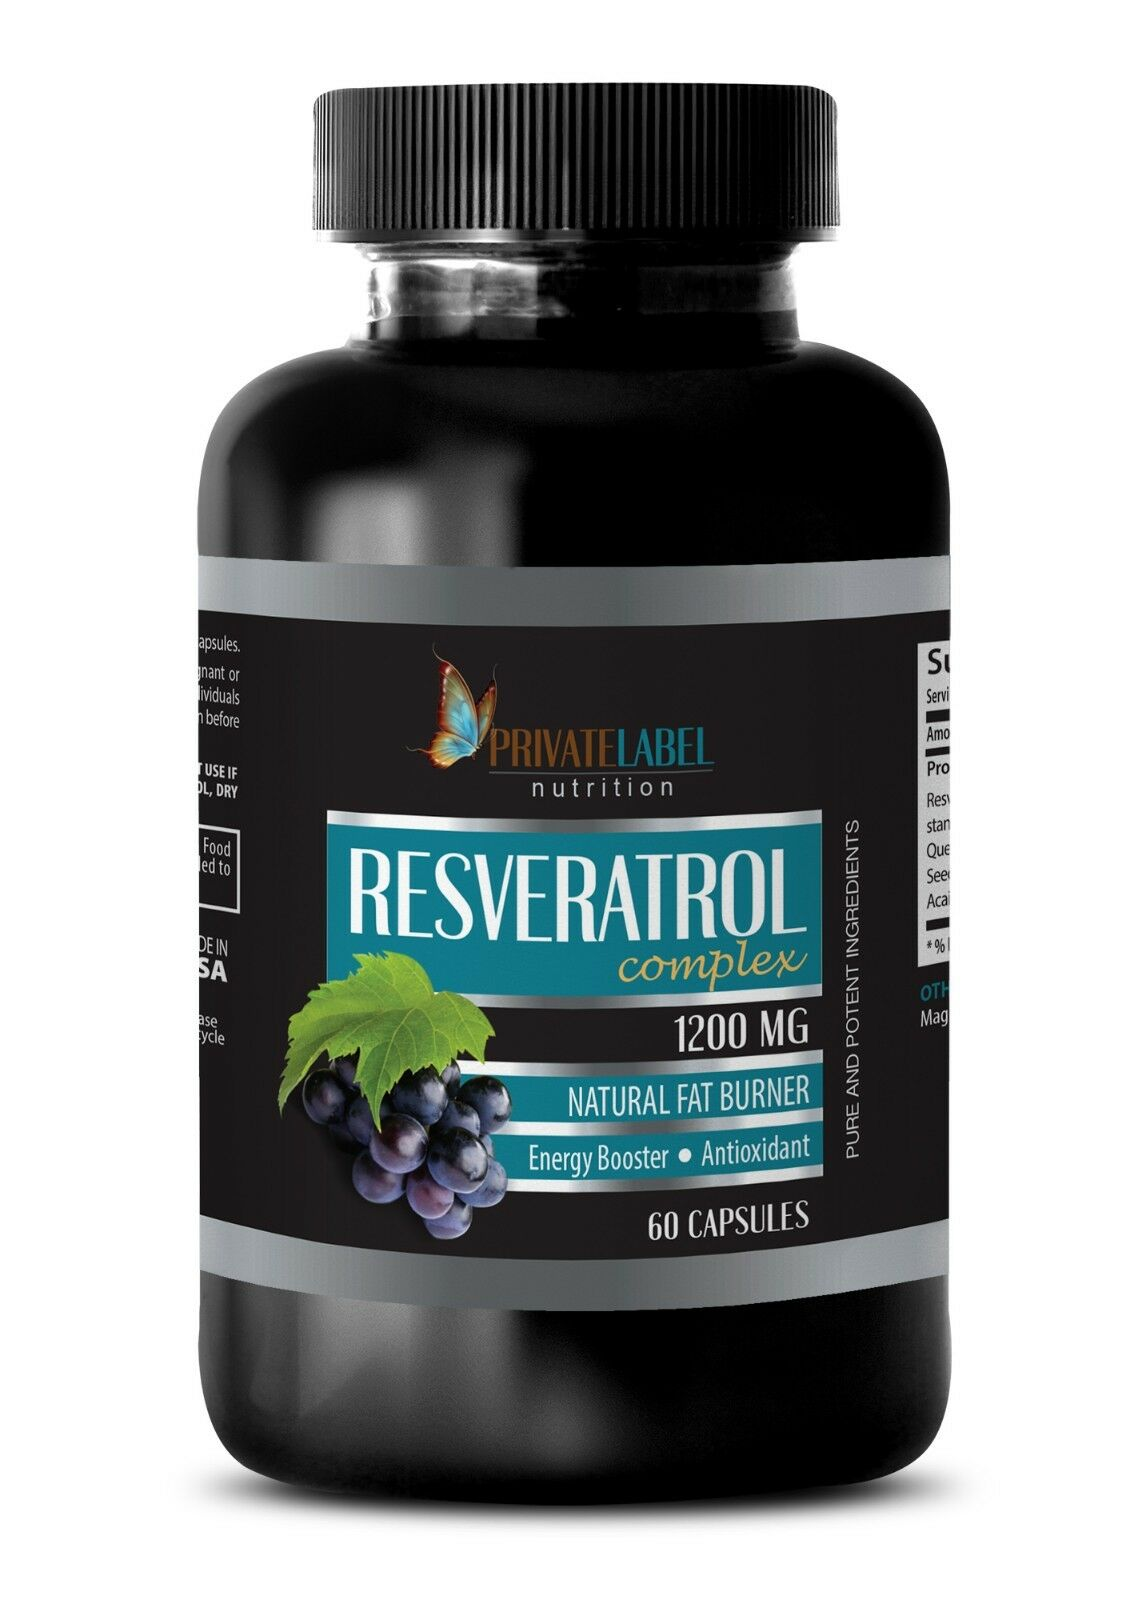 Resveratrol Supplement Pure Resveratrol 1200mg 1 Bottle Energy Vitamin For Sale Online